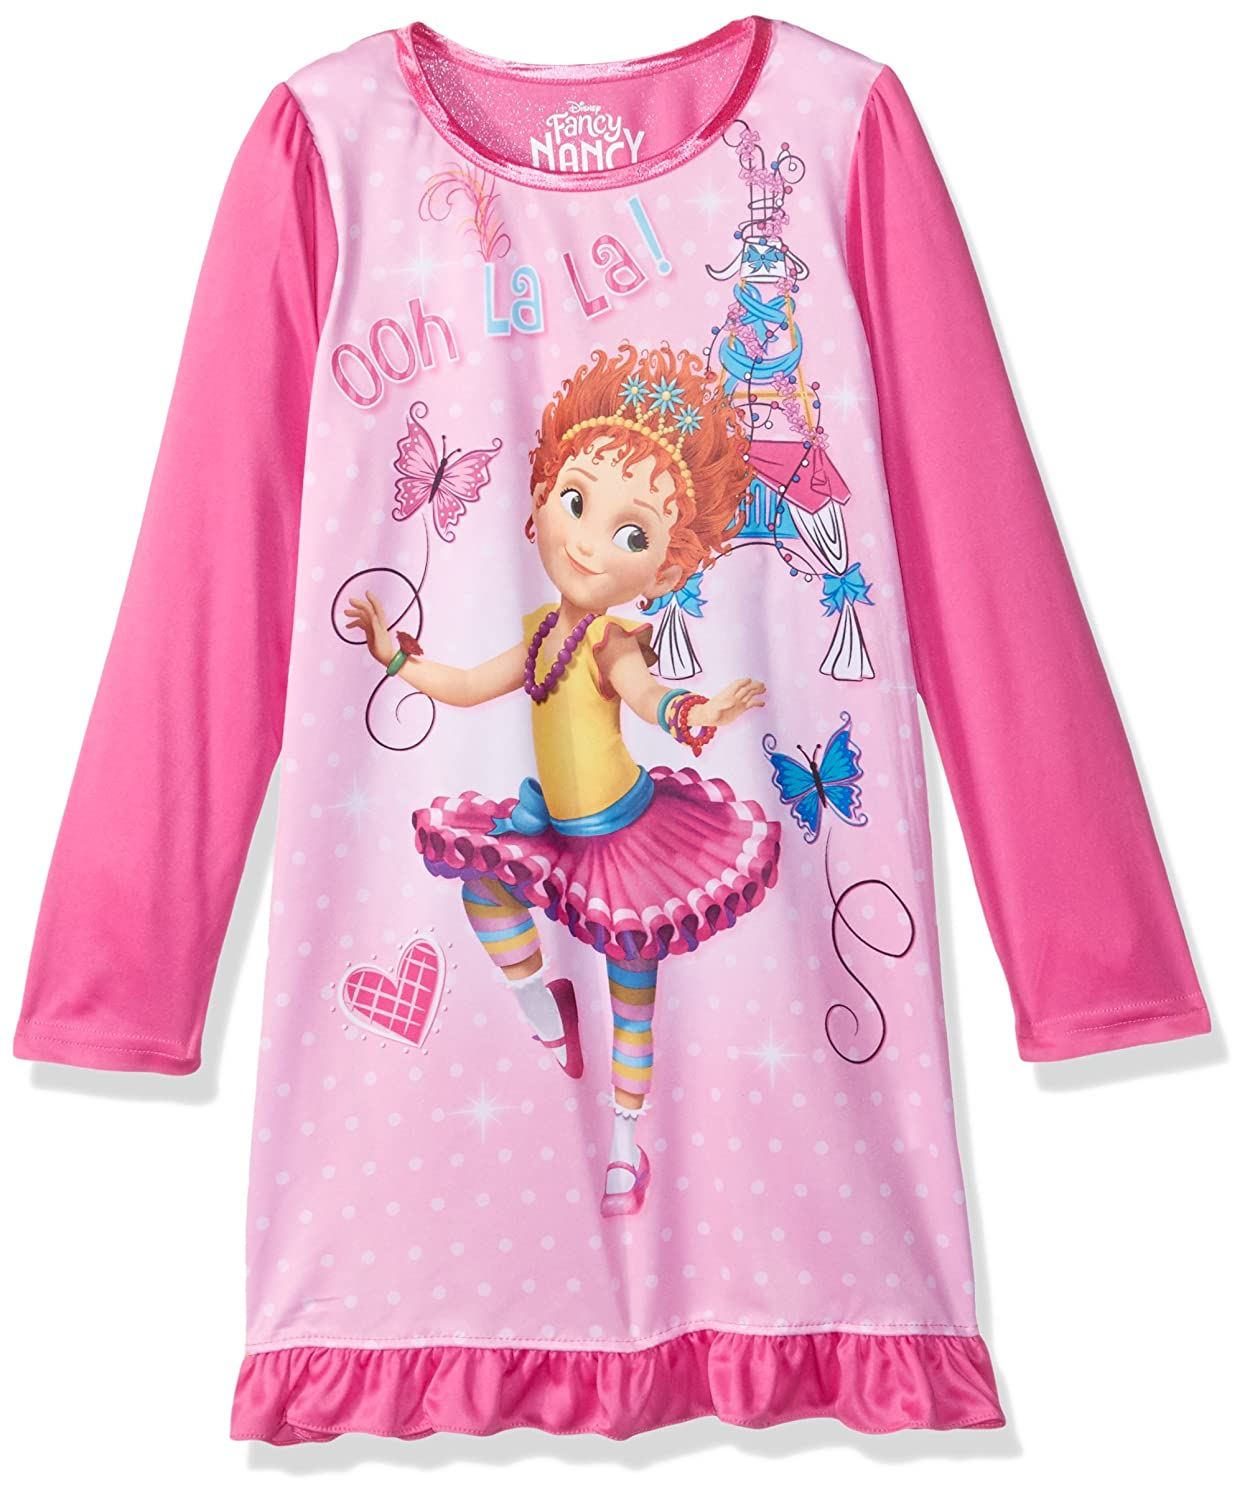 Disney Girls Fancy Nancy Nightgown 21NW002GDLZA-P6